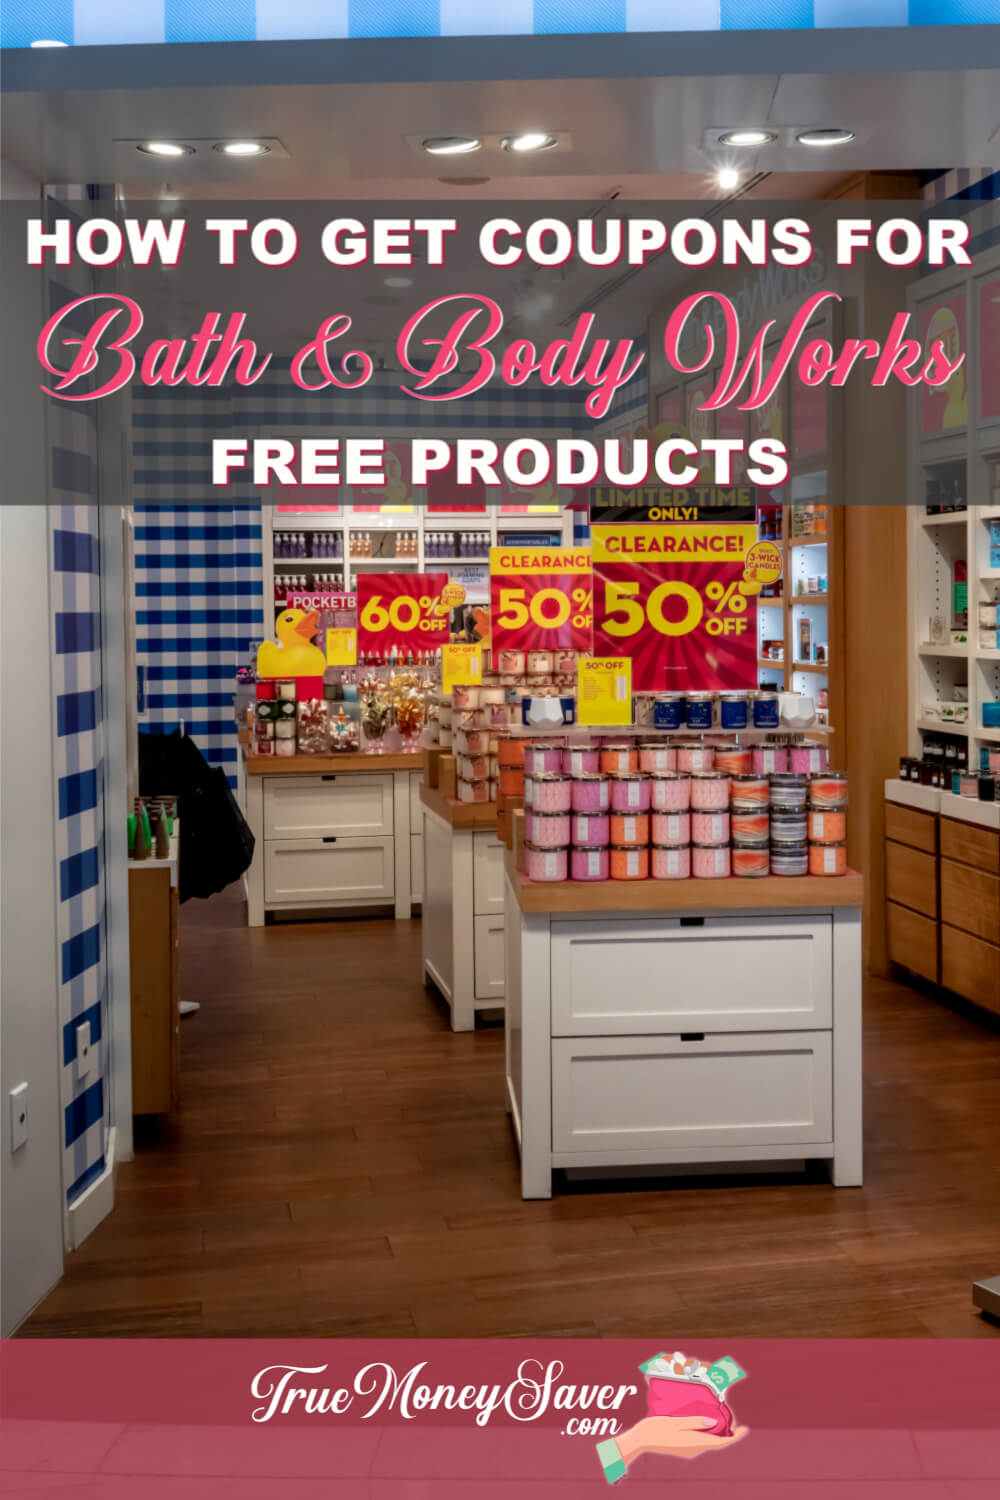 How To Get On The Bath And Body Works Mailing List For Free Coupons